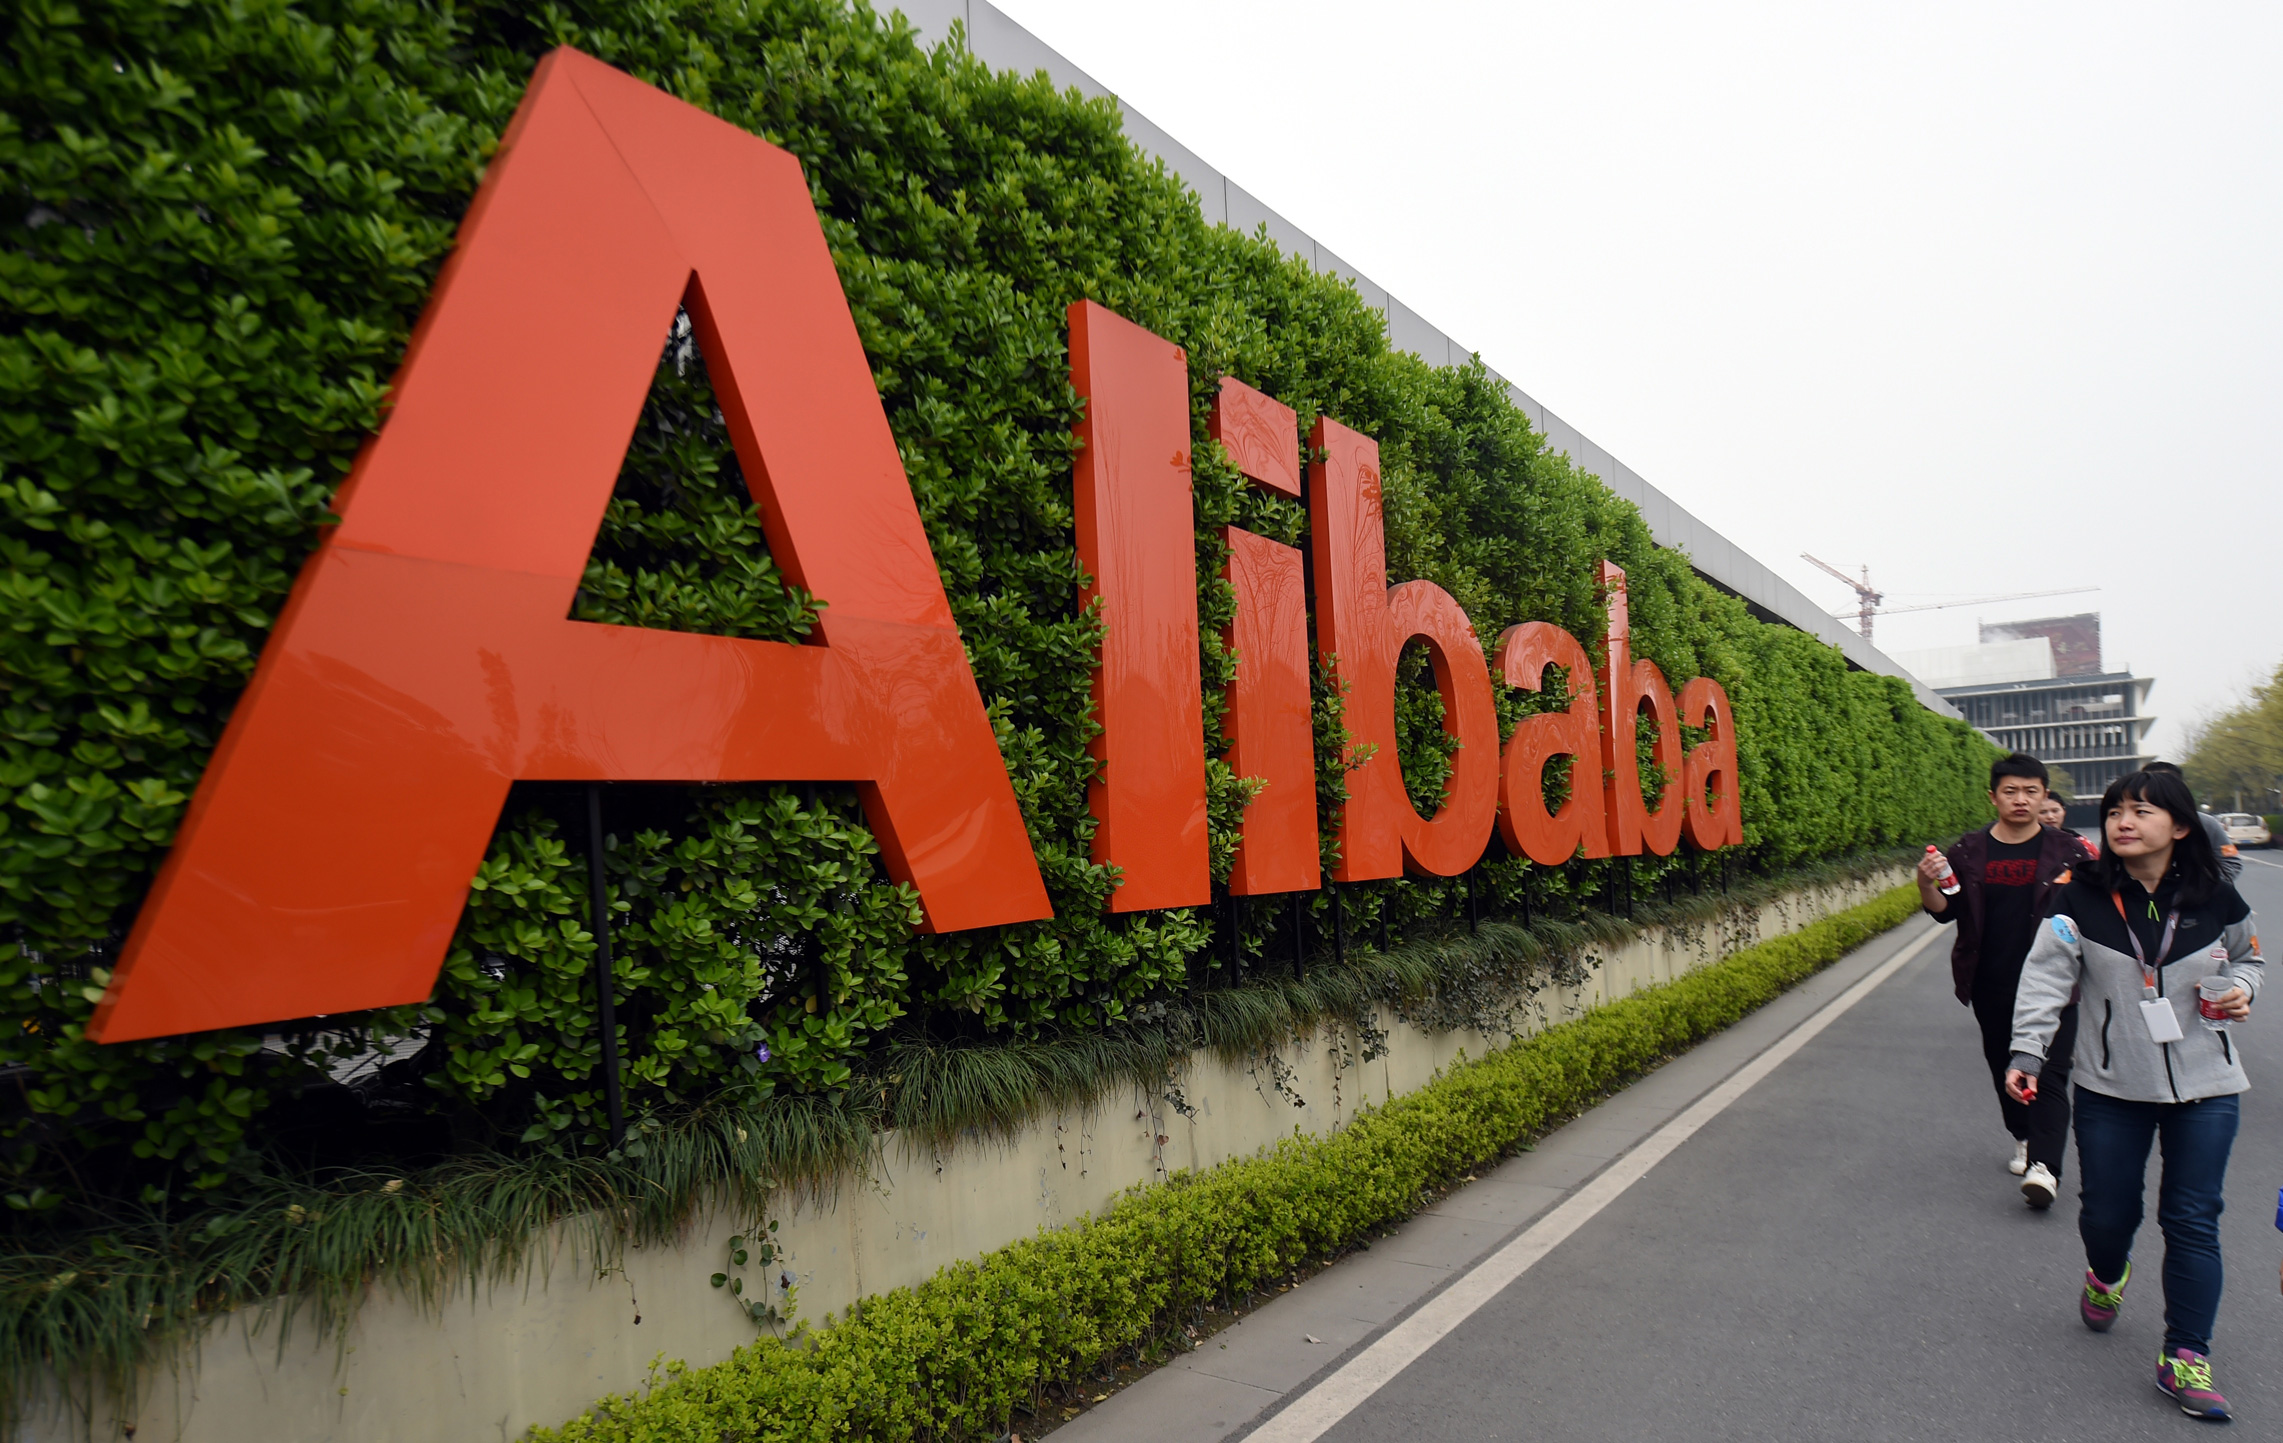 Alibaba will consider listing its affiliate companies in Hong Kong